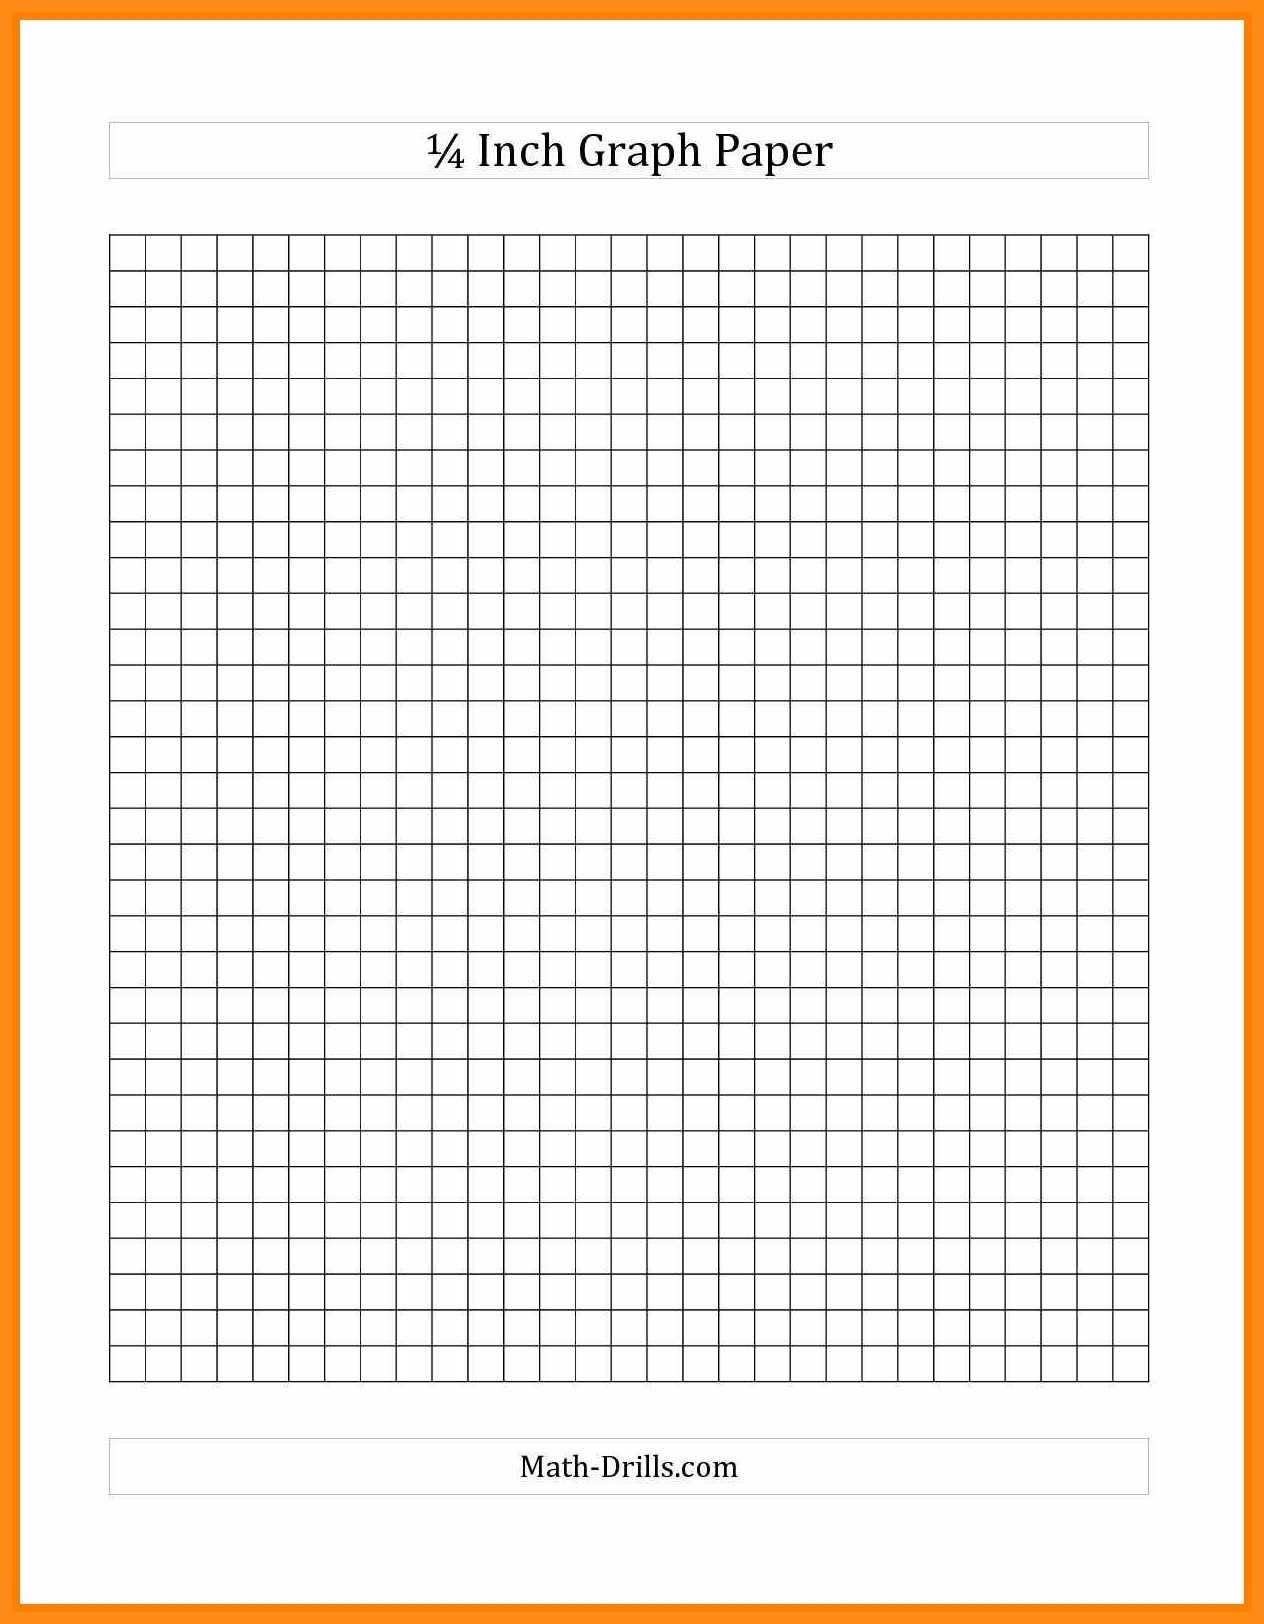 11-12 Quarter Inch Graph Paper | Jadegardenwi - One Inch Graph Paper Free Printable